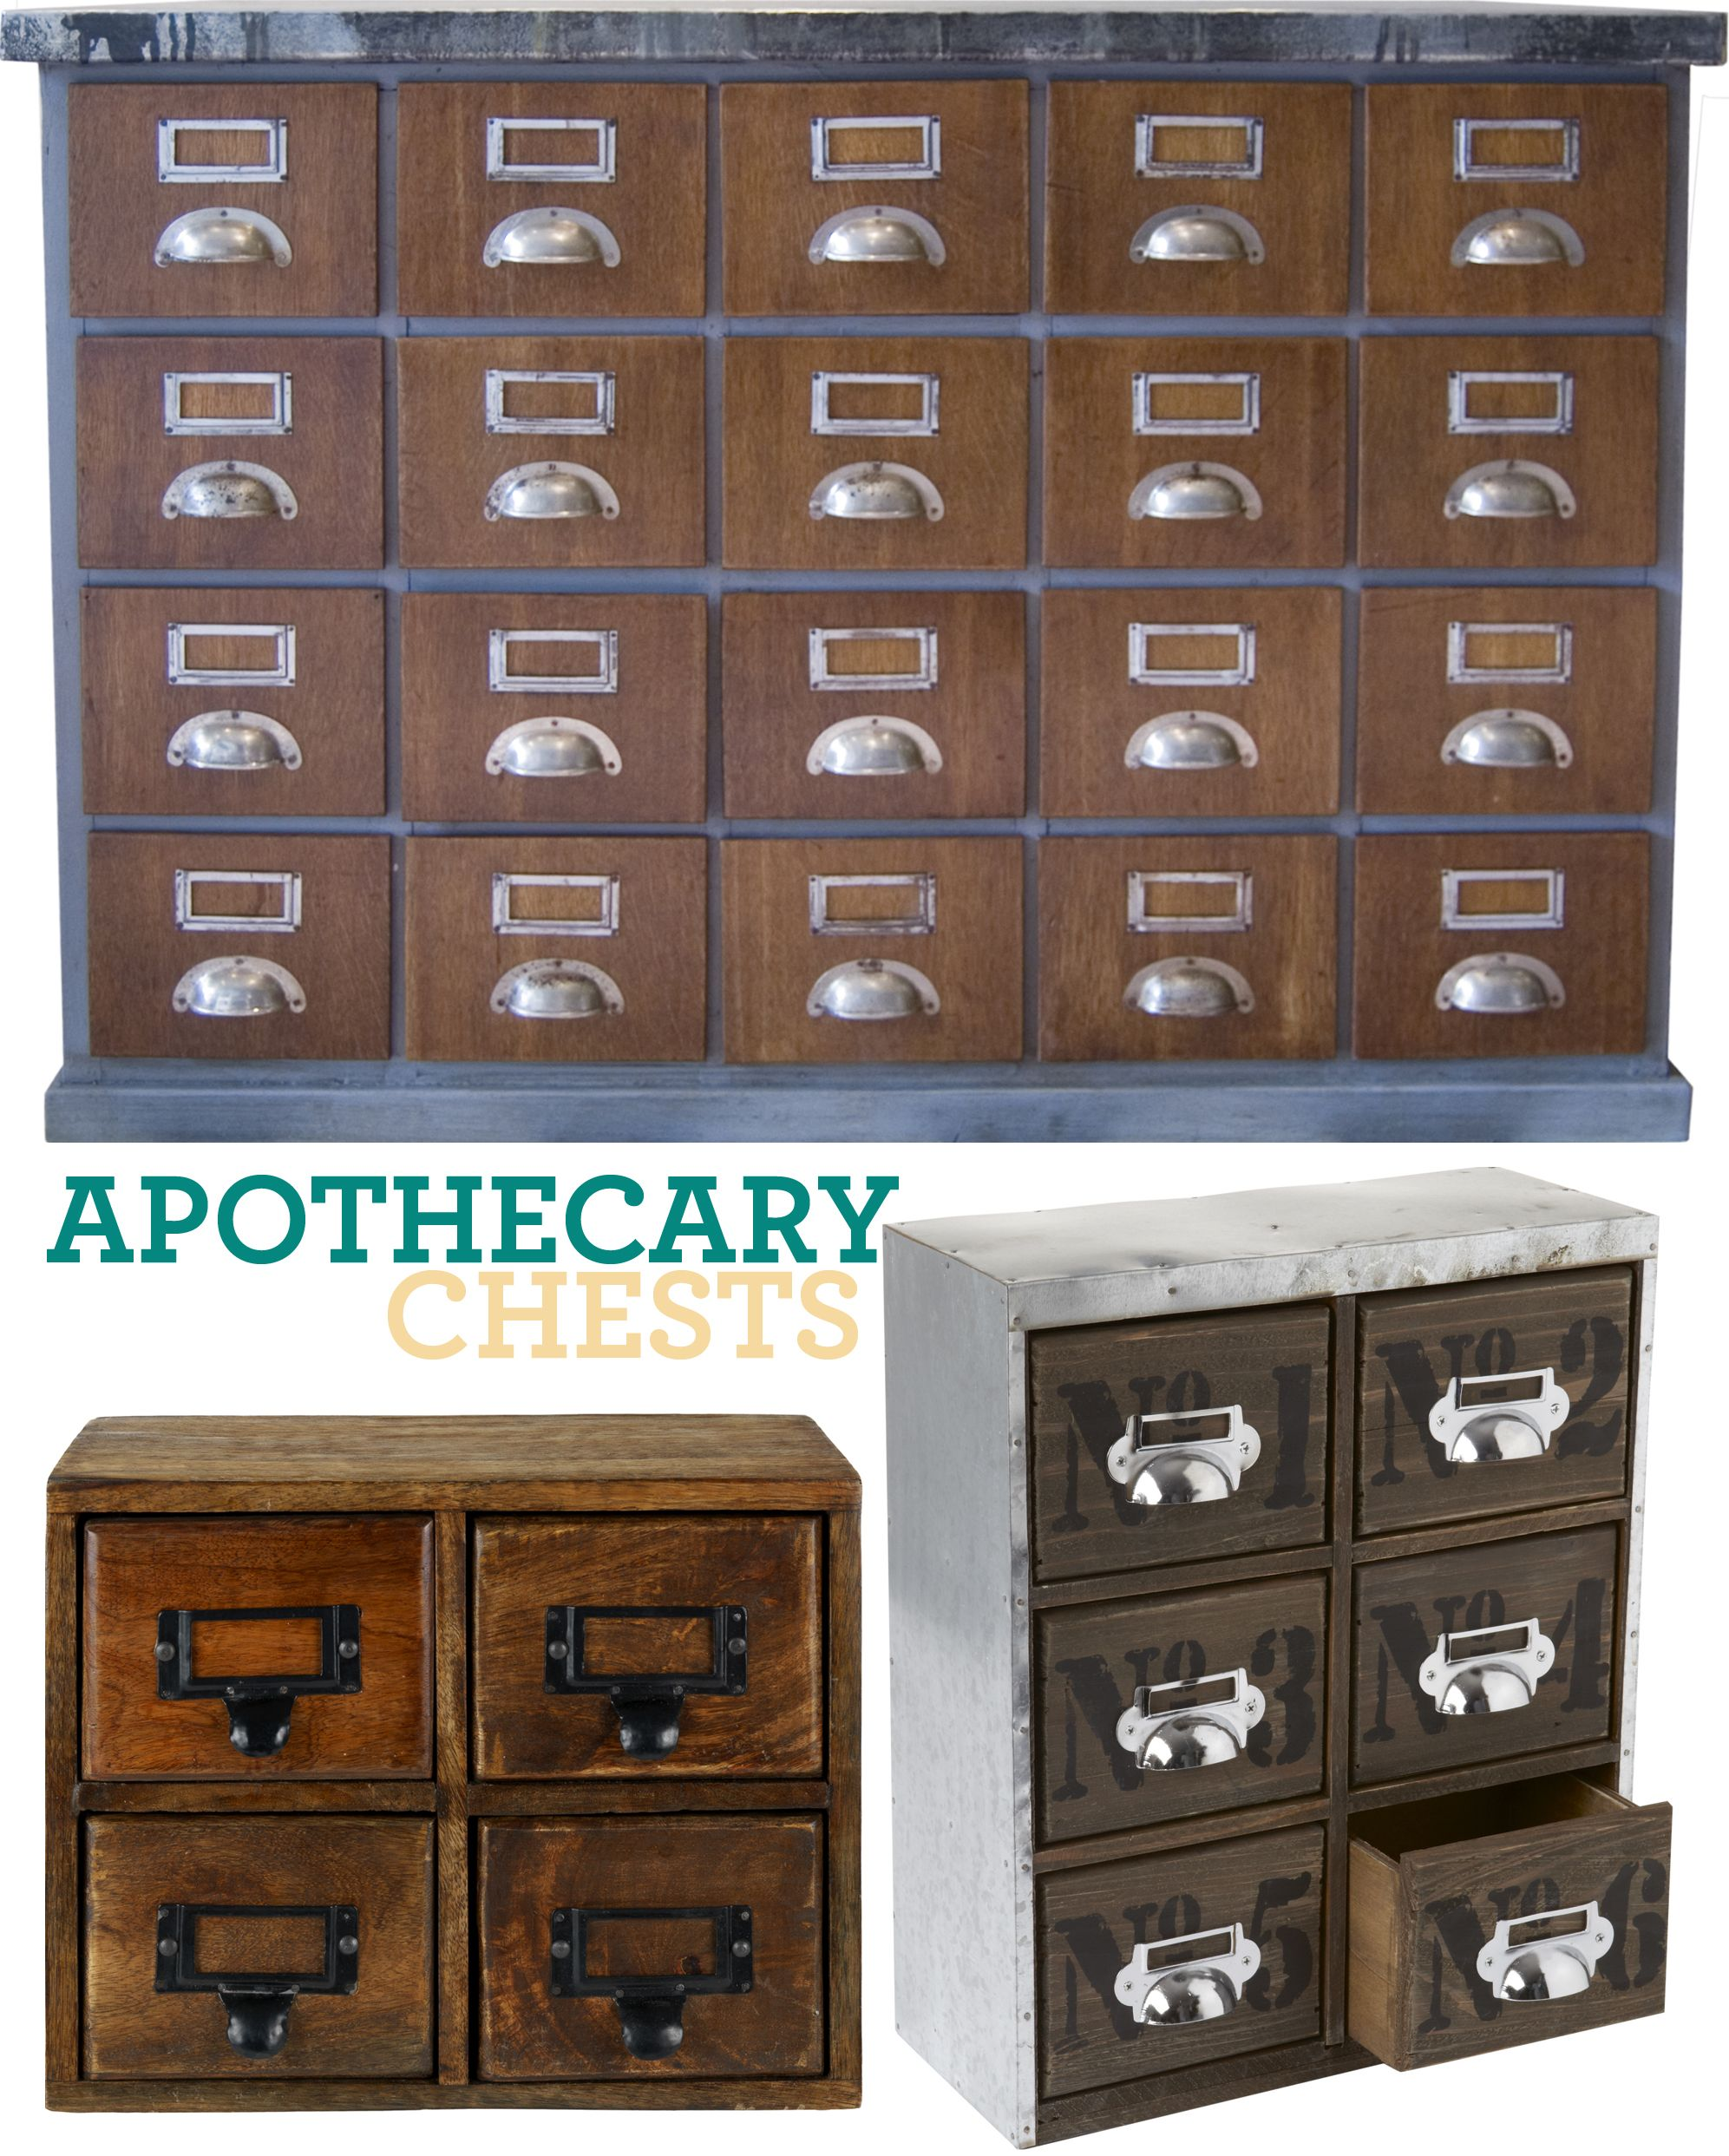 oak chewed drawers solid imgur on gallery chest apothecary of puppy original with dresser style some to zahesth album drawer wood knobs wooden